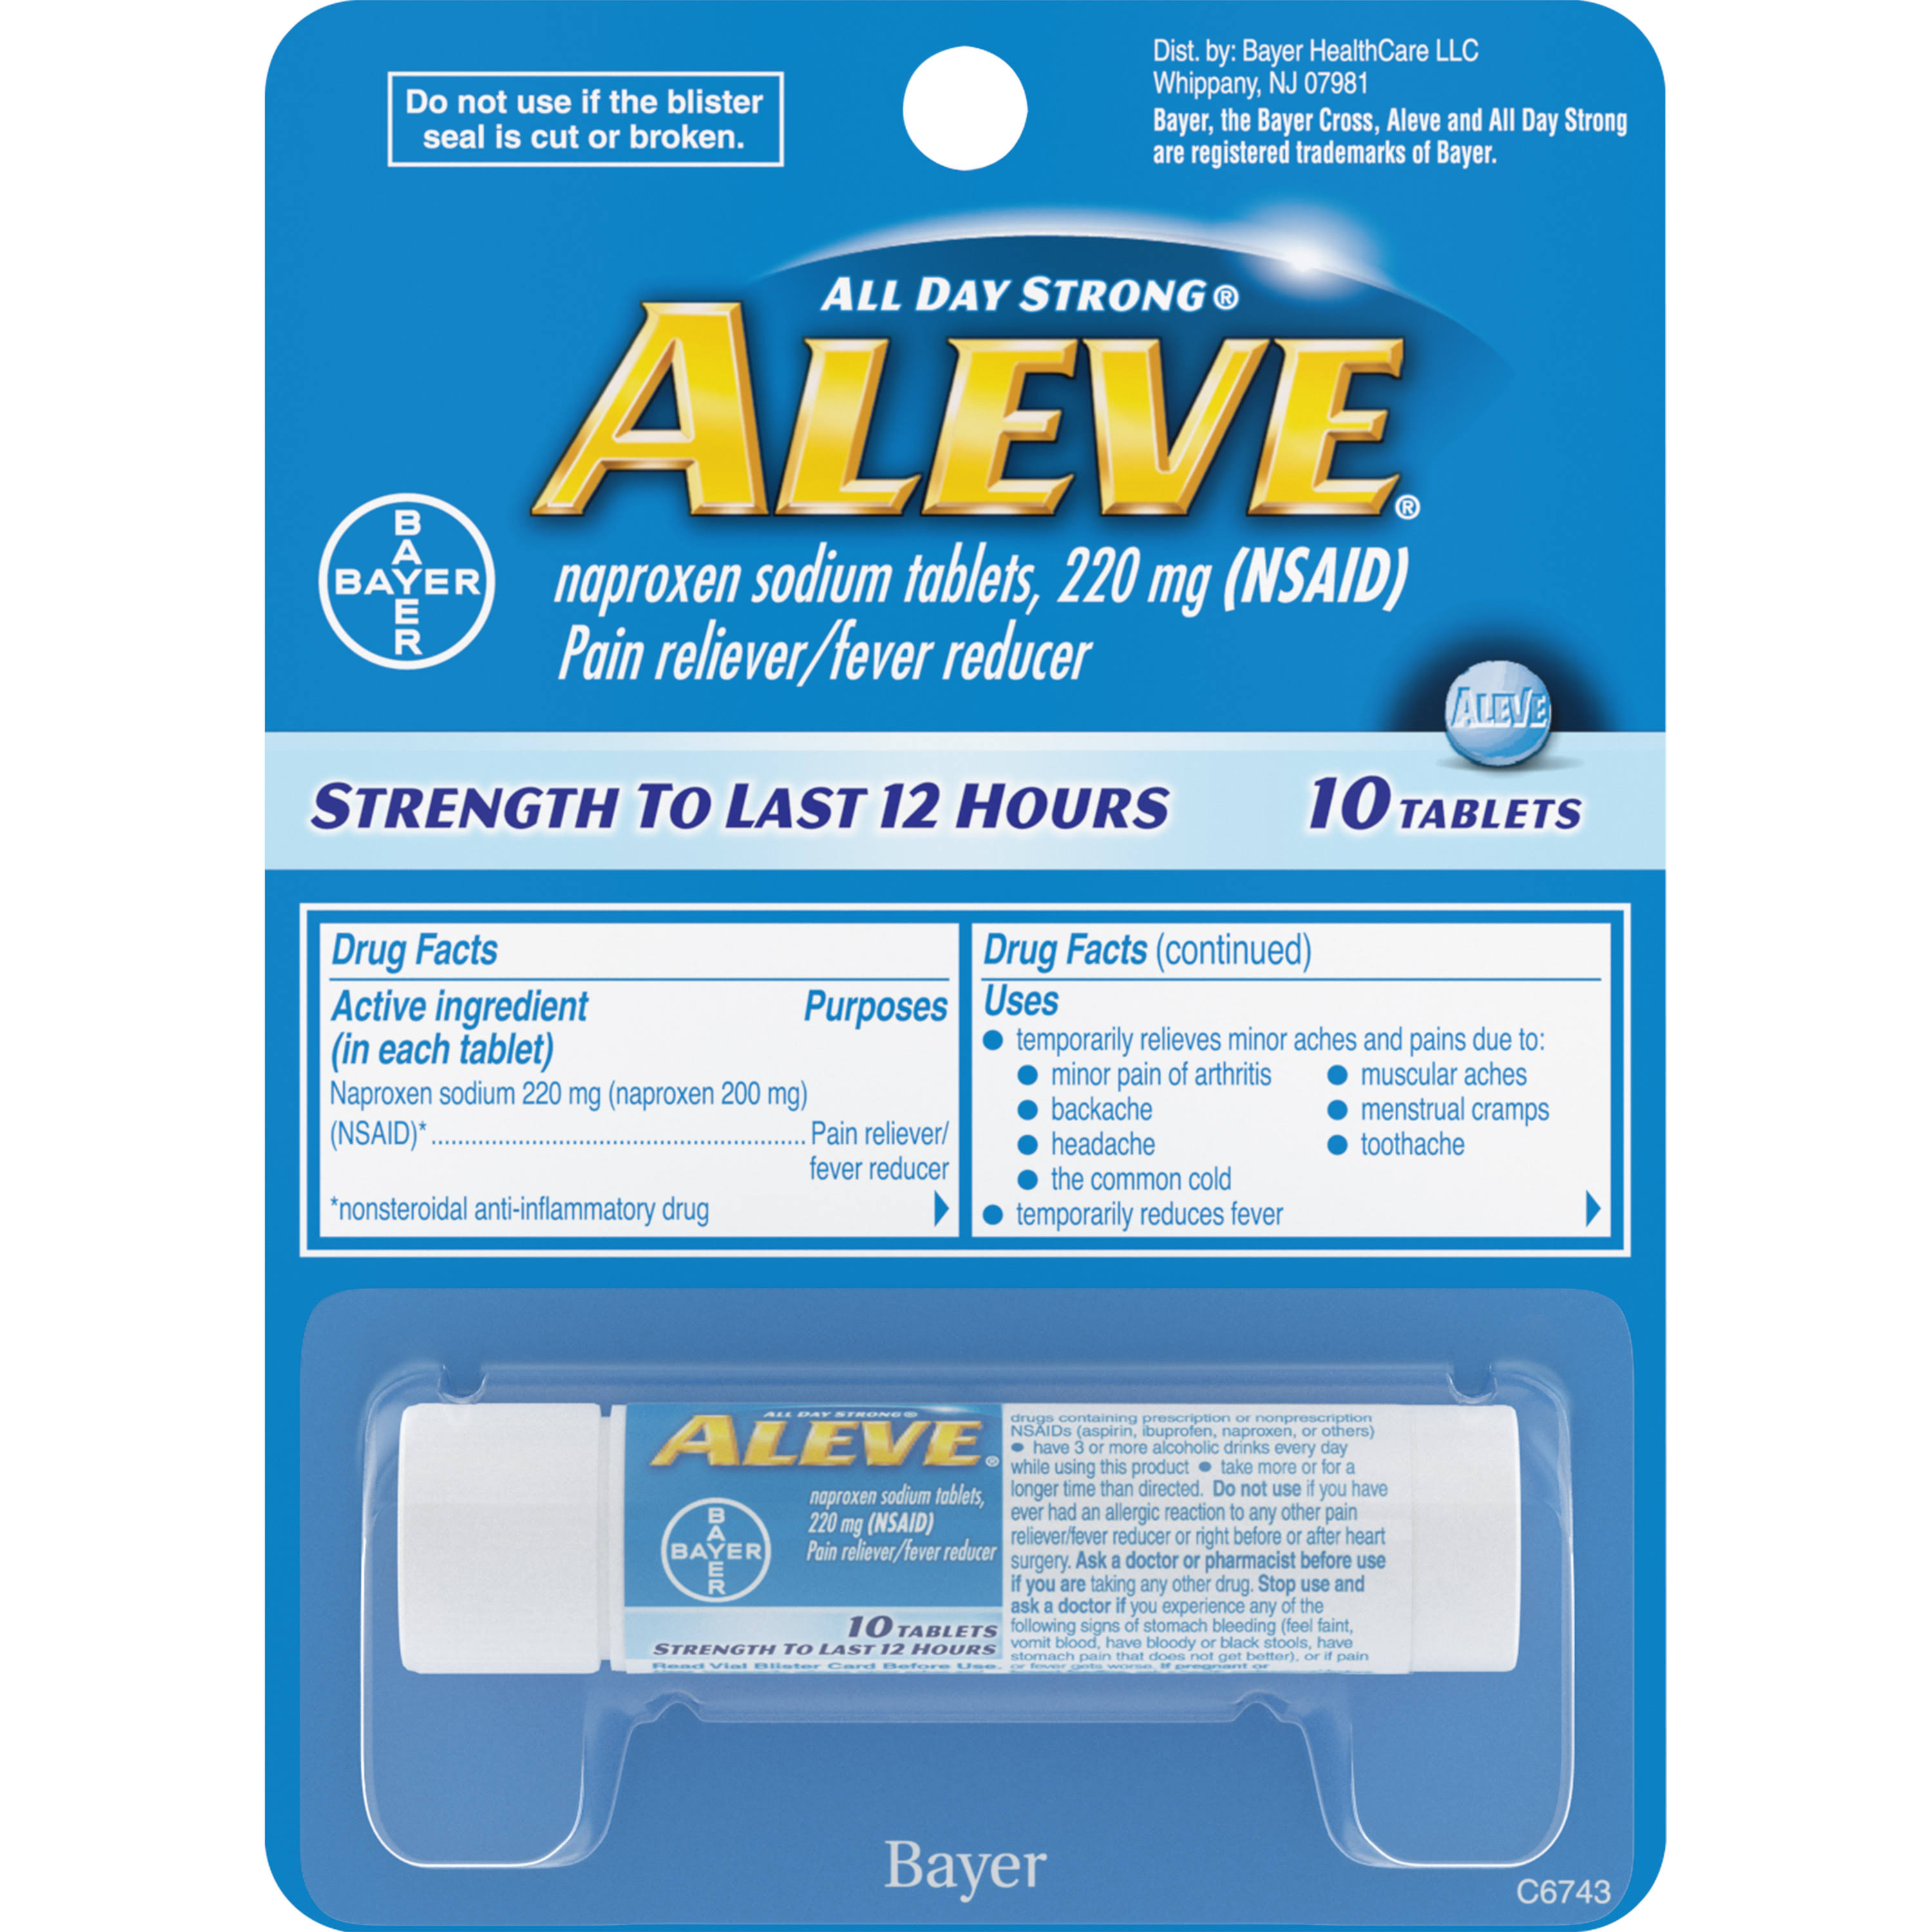 Bayer Aleve All Day Strong Naproxen Sodium Tablets - 220mg, 10pk